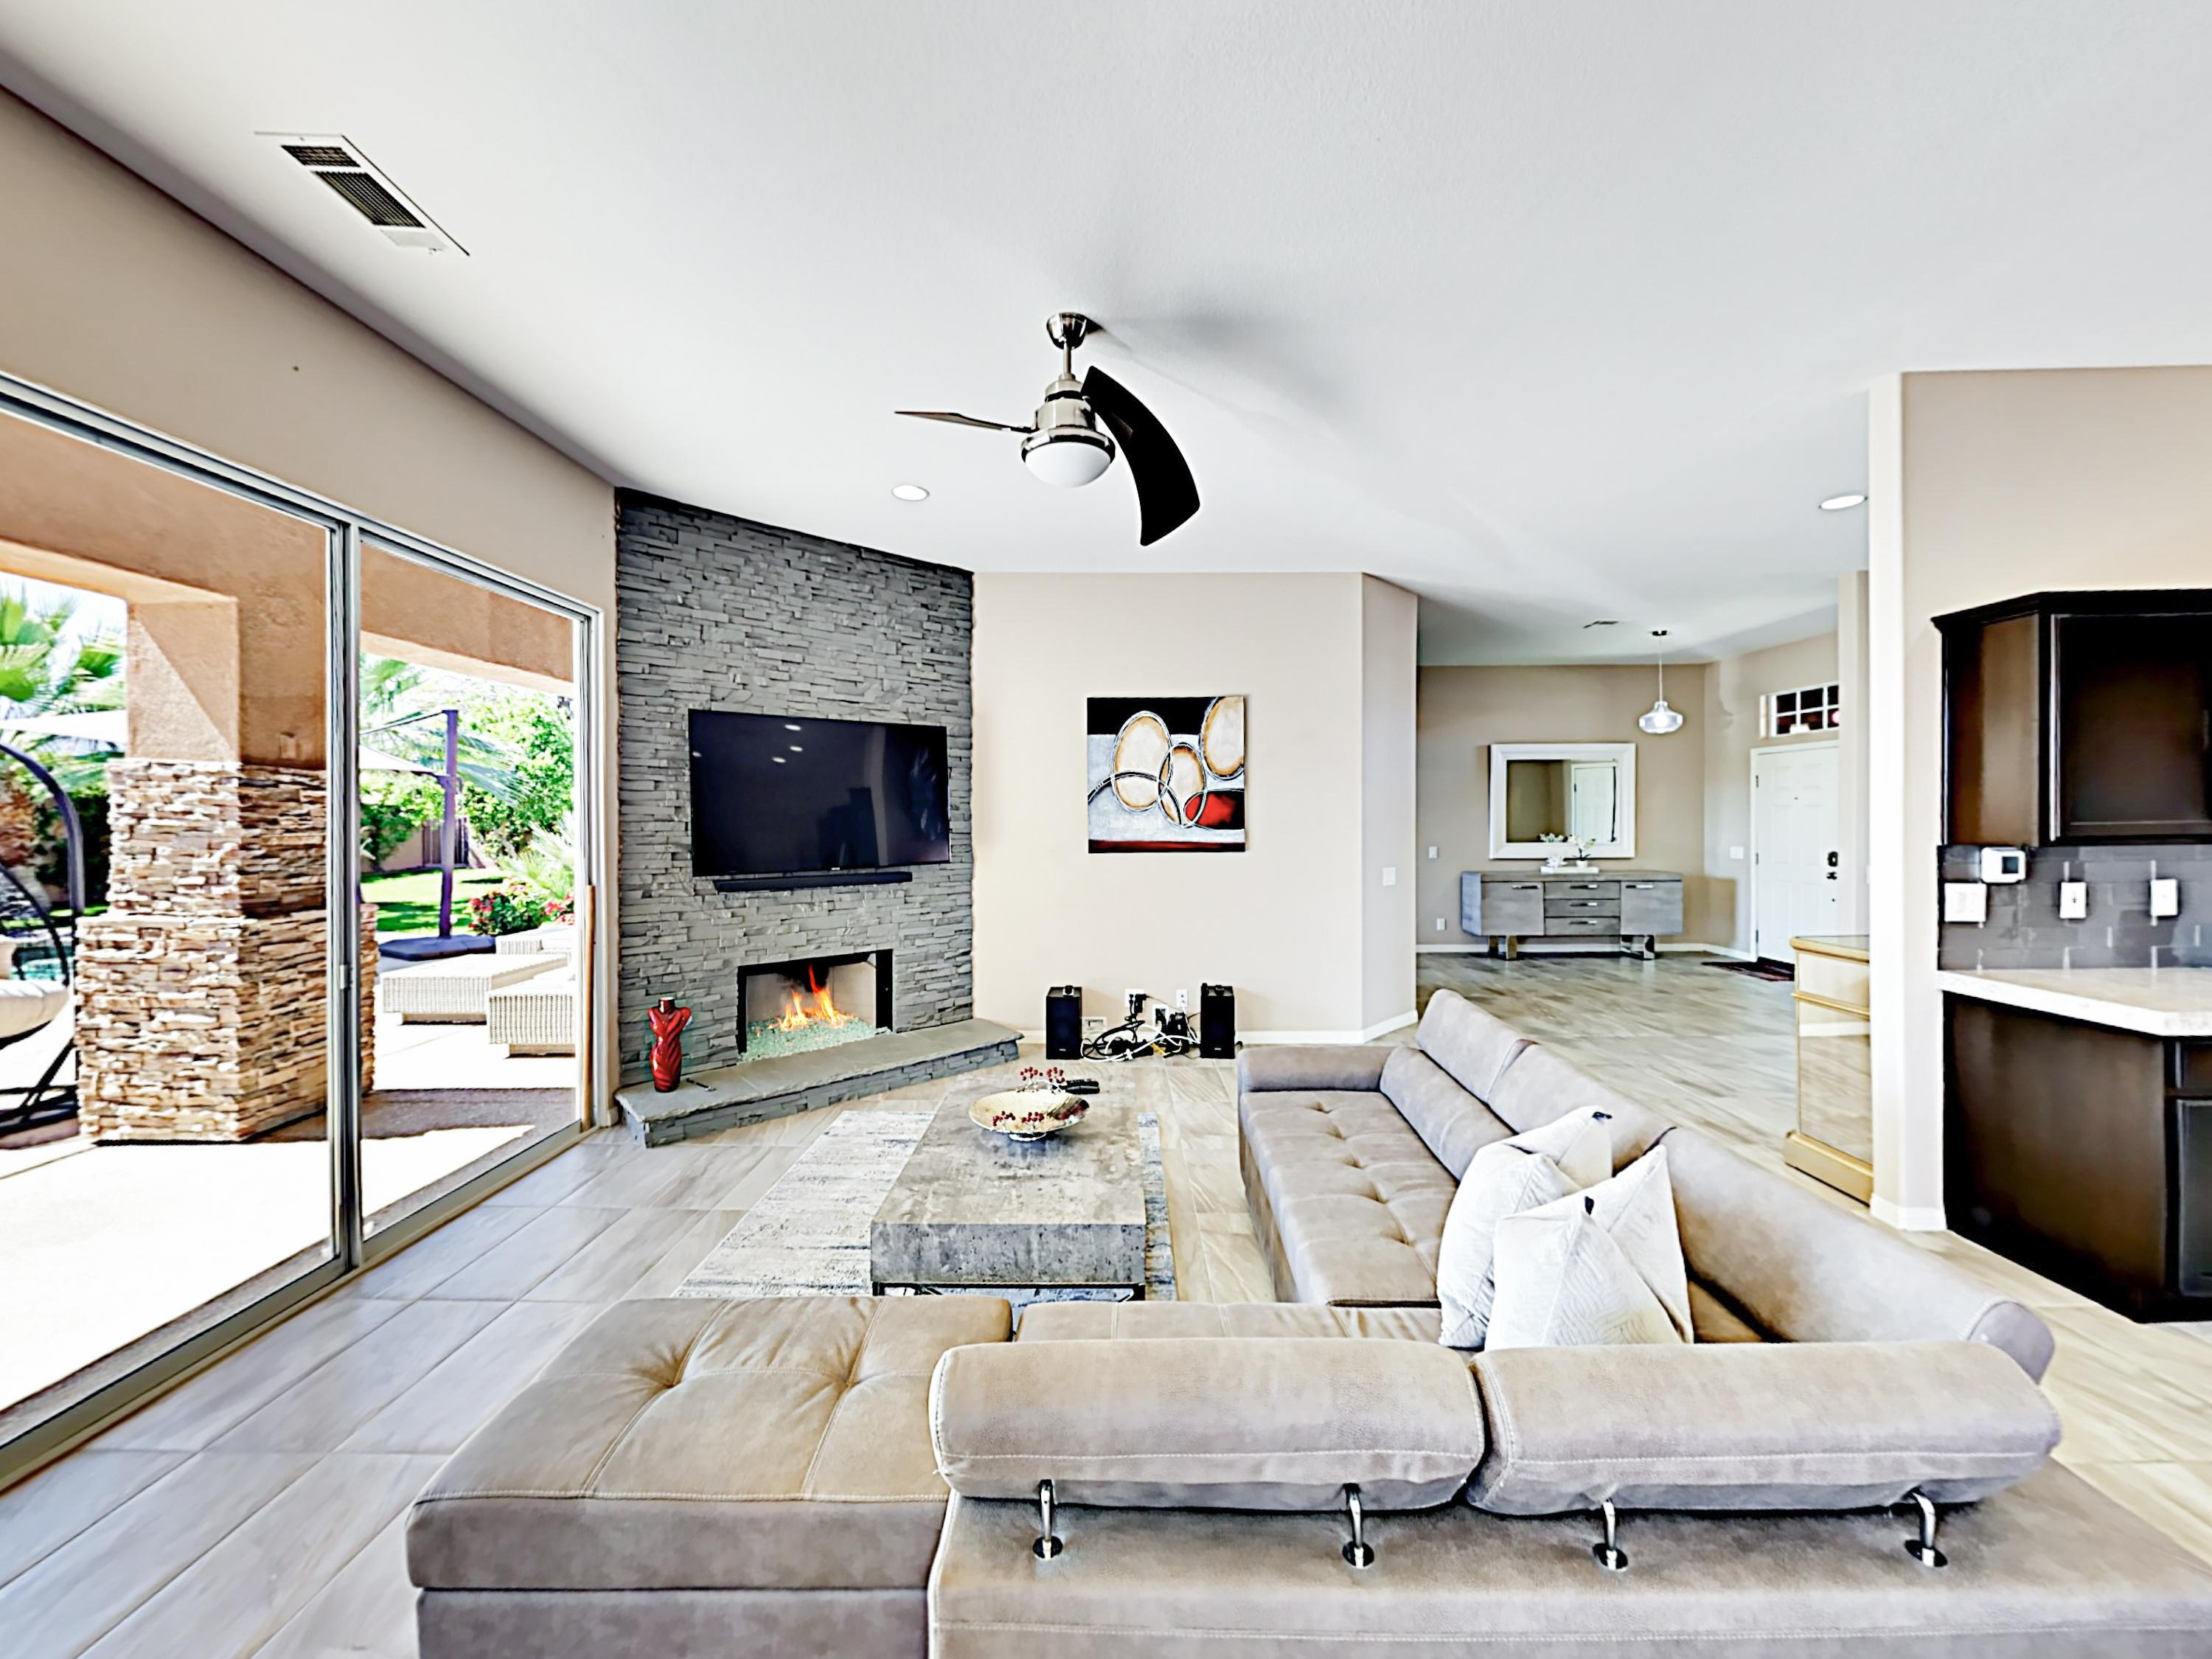 Upscale furnishings and contemporary decor fill this 2,800 square foot home with style.